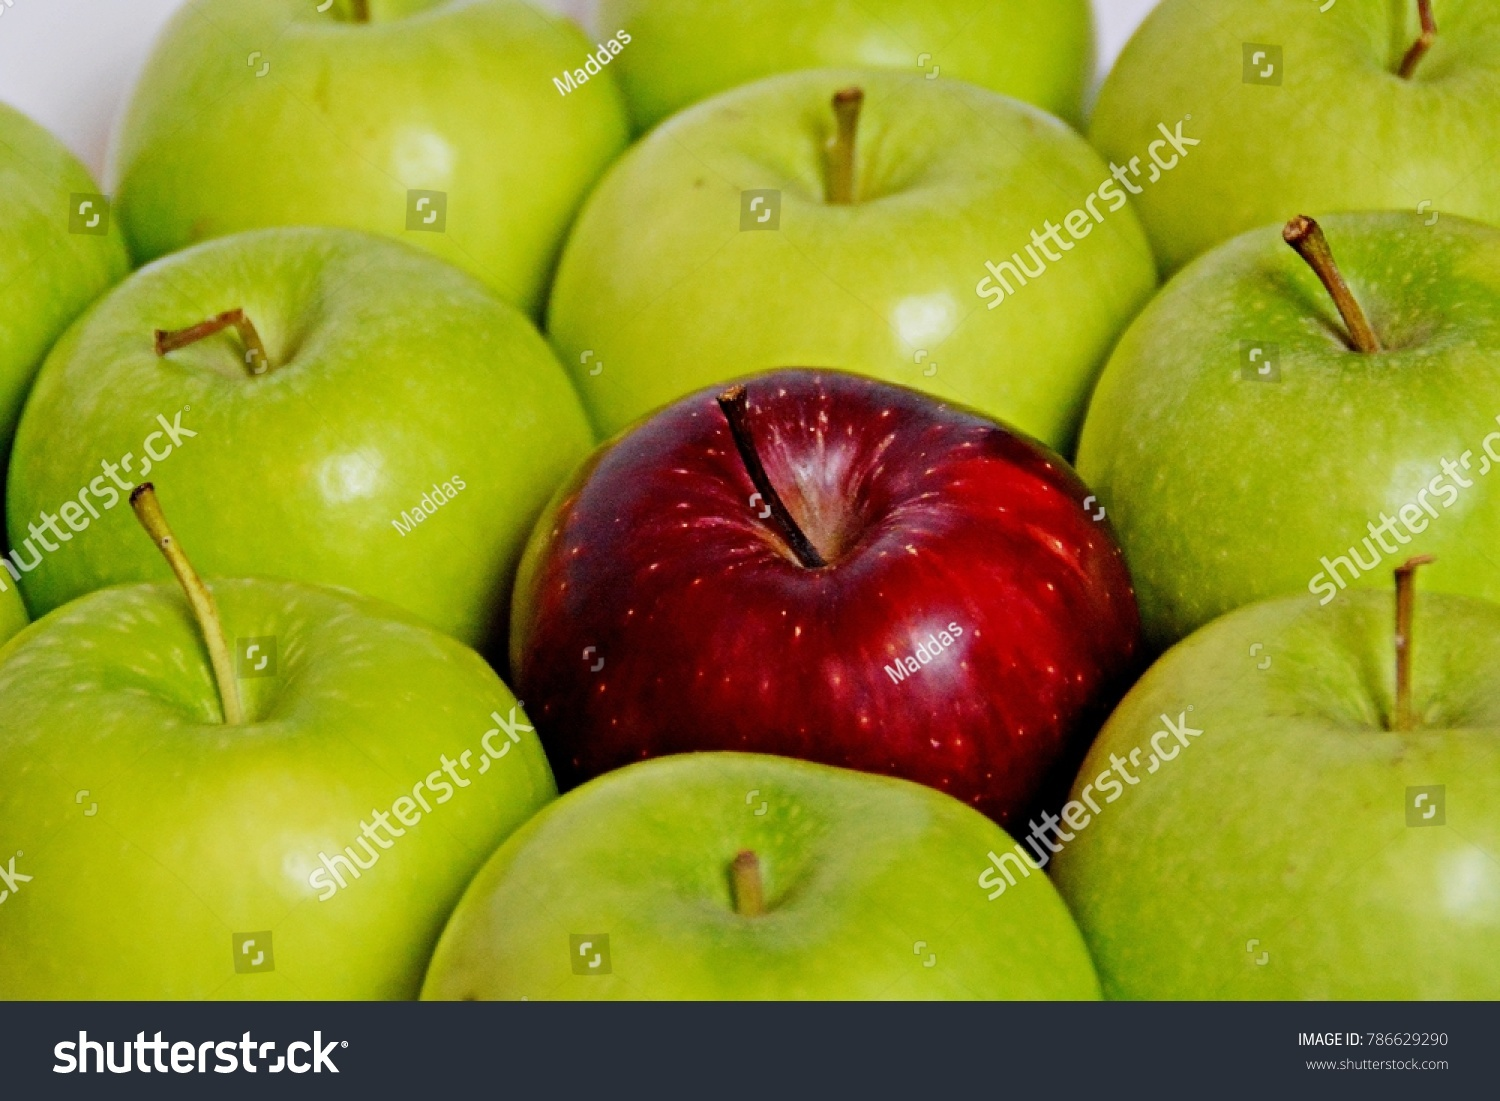 What do apples symbolize images symbols and meanings what do apples symbolize image collections symbols and meanings red apple standing out large group stock buycottarizona Image collections